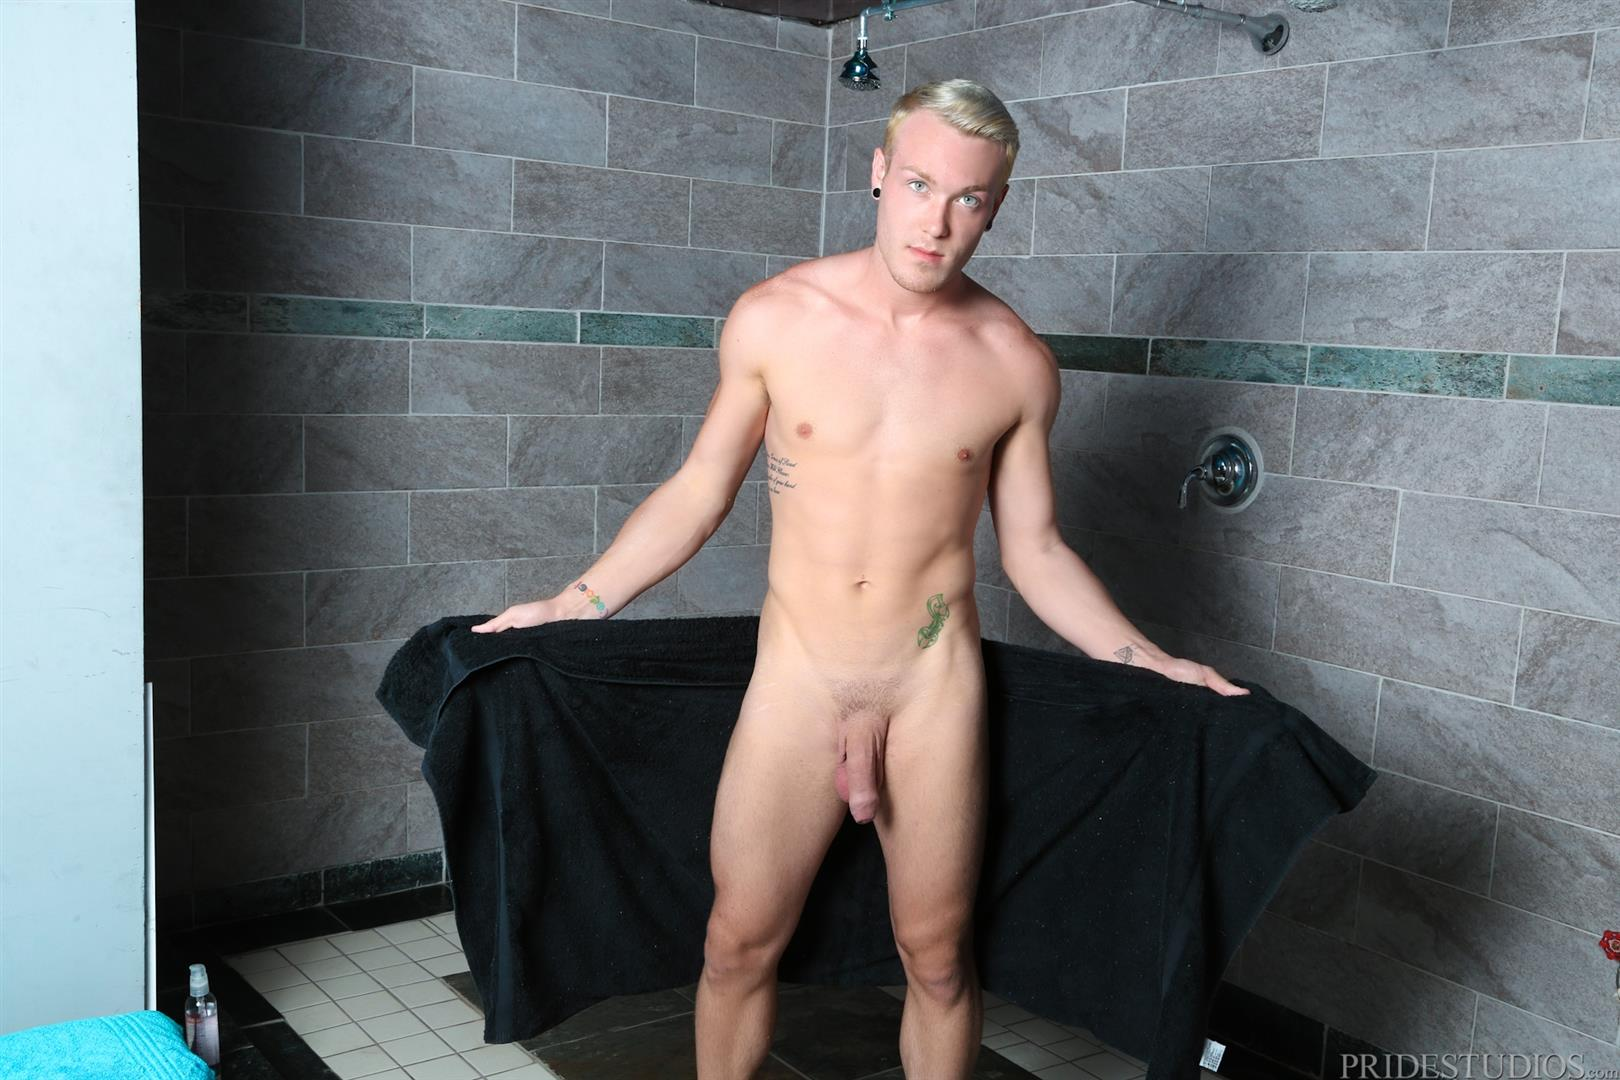 Extra Big Dicks Kaydin Bennett Athletic Guy In The Shower Jerking Off Big Uncut Cock Amateur Gay Porn 06